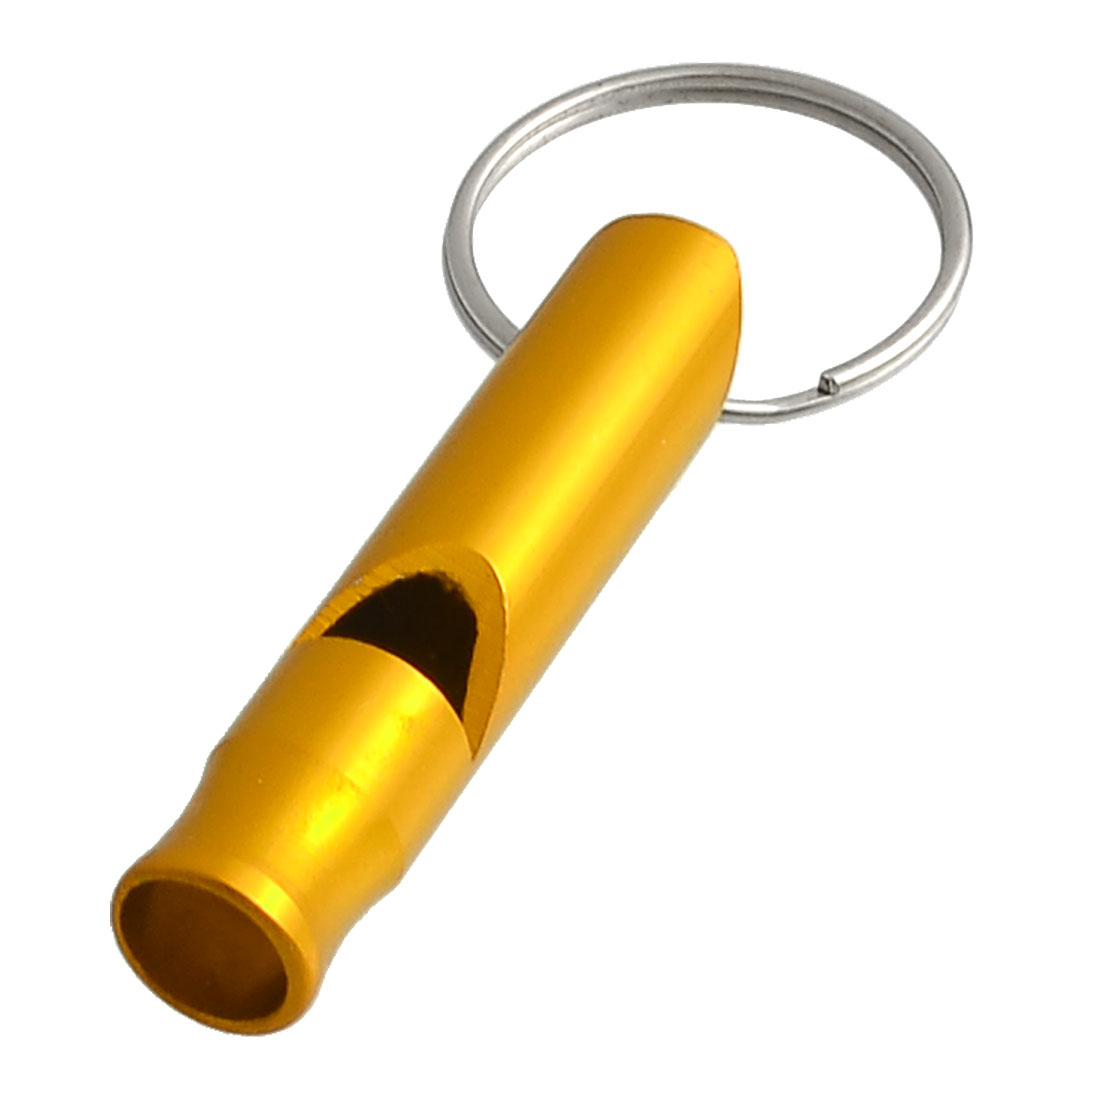 Gold Tone Aluminum Safety Tube Whistle Keyring Keychain Handbag Ornament